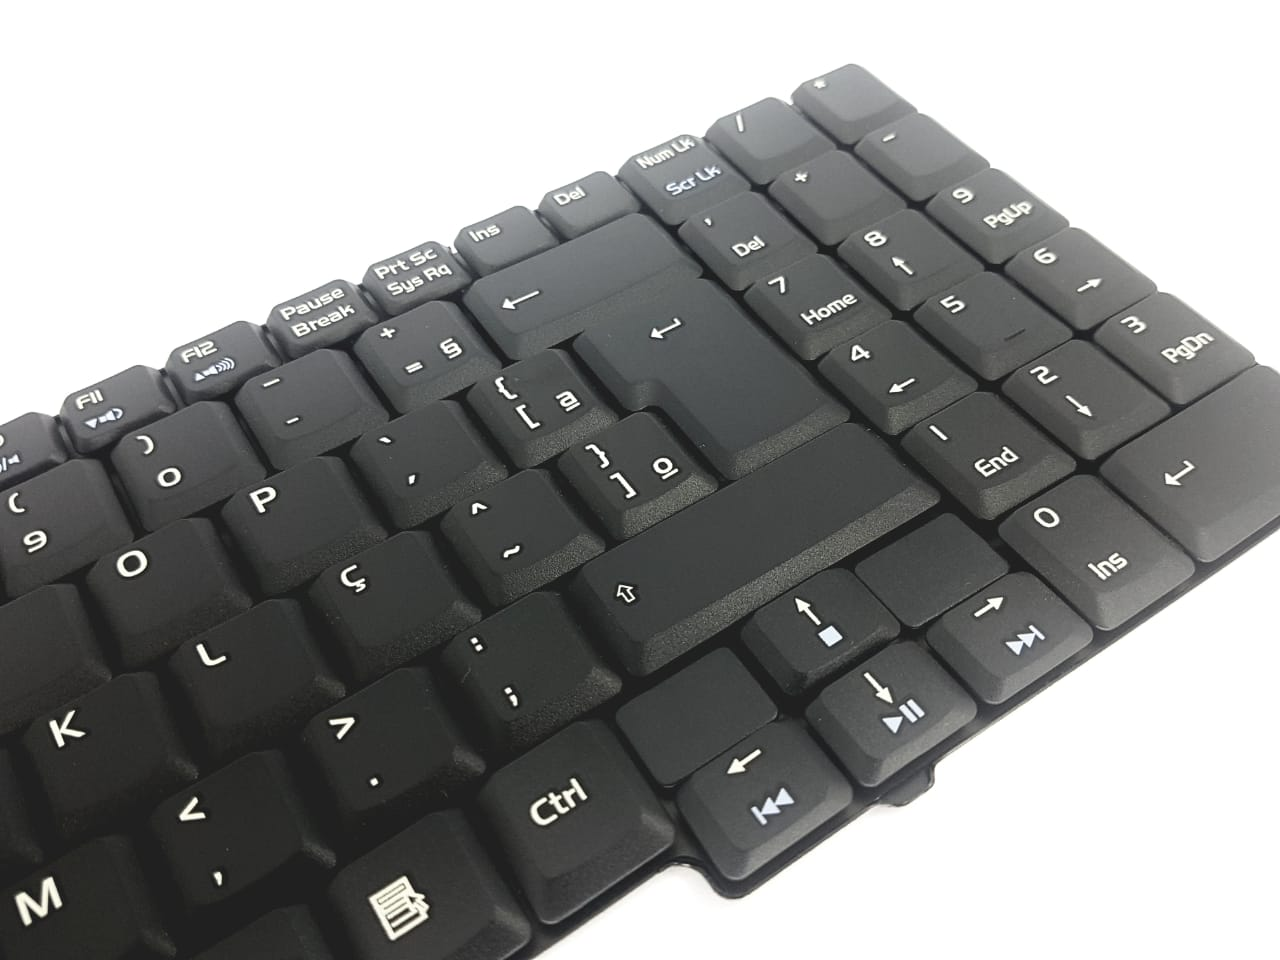 Teclado Para Notebook Philco Pn Mp-03756pa-528b Phn15 com Ç